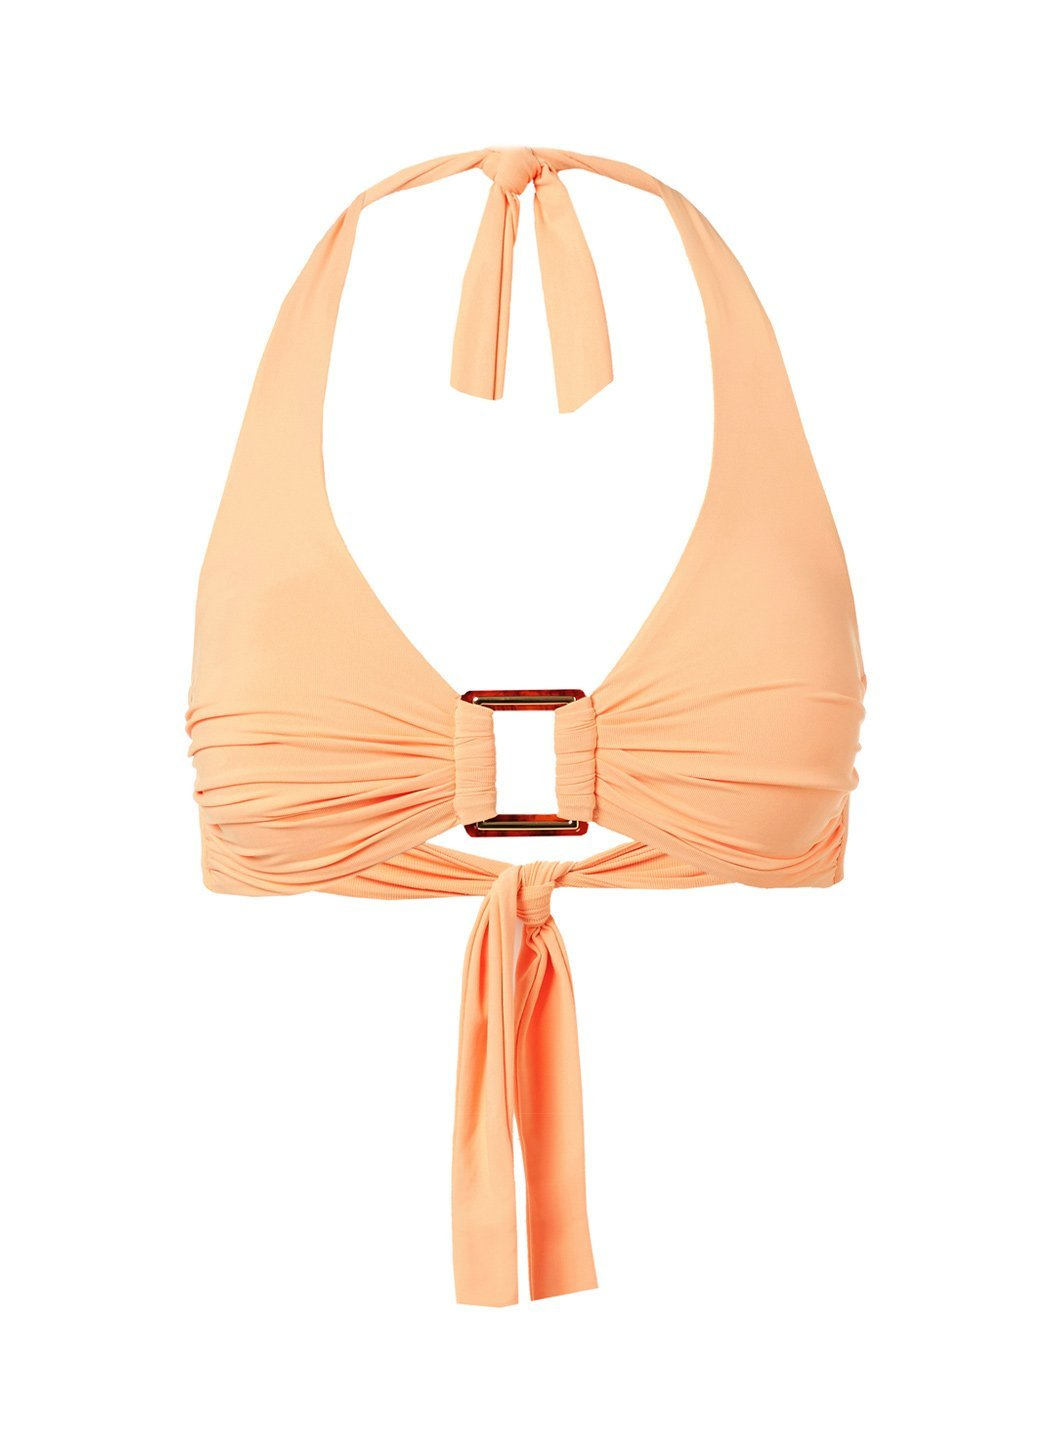 Paris Mango Halterneck Rectangle Trim Bikini Top